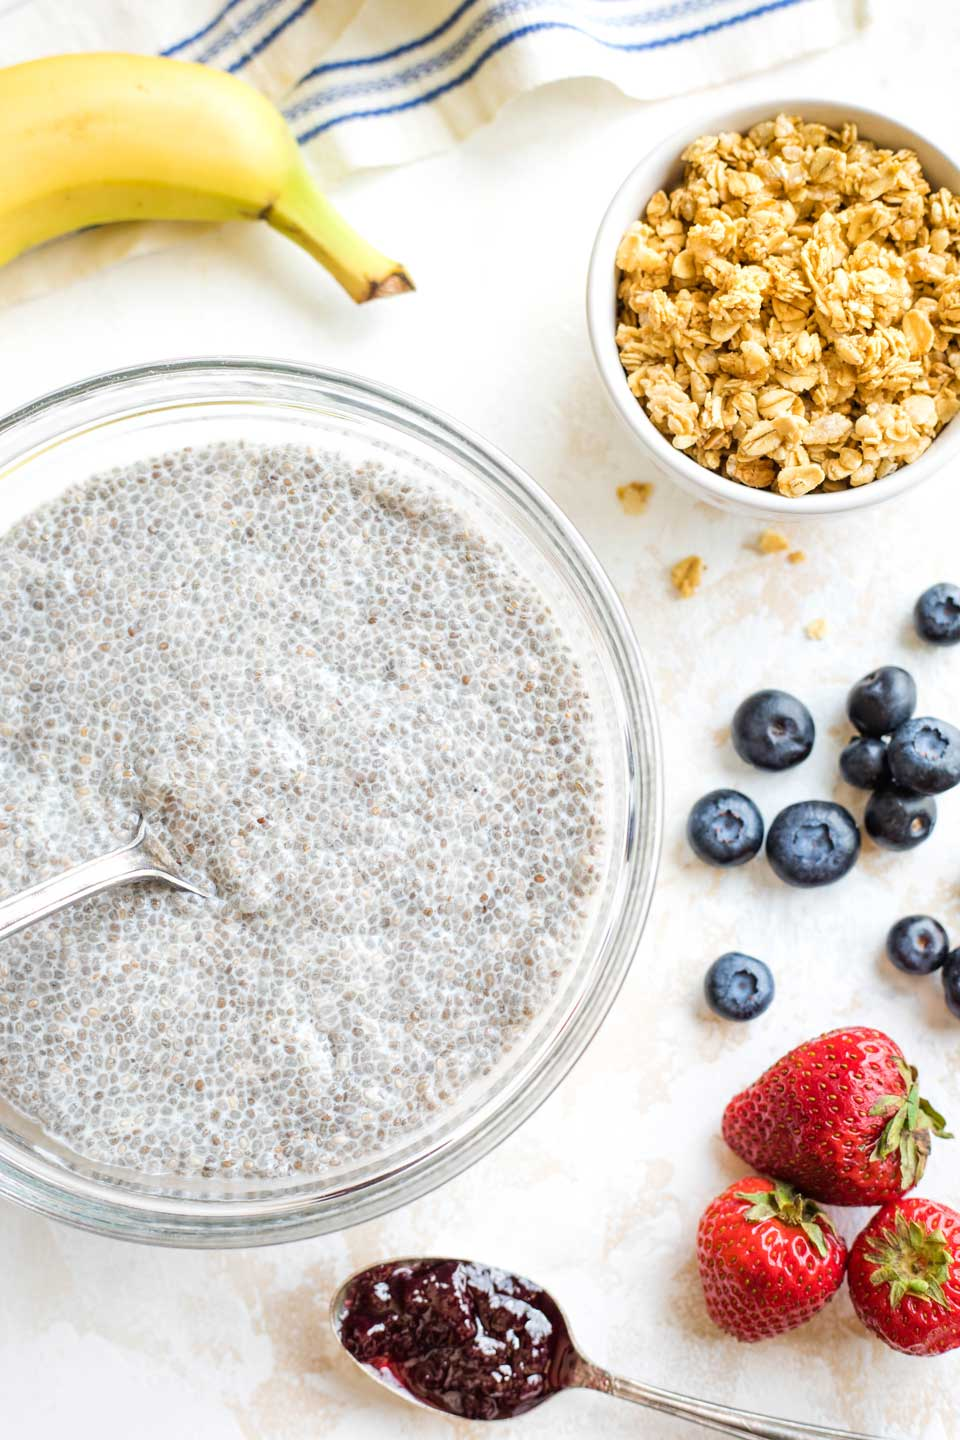 serving bowl with finished chia pudding, surrounded by toppings like fruits, granola and jelly